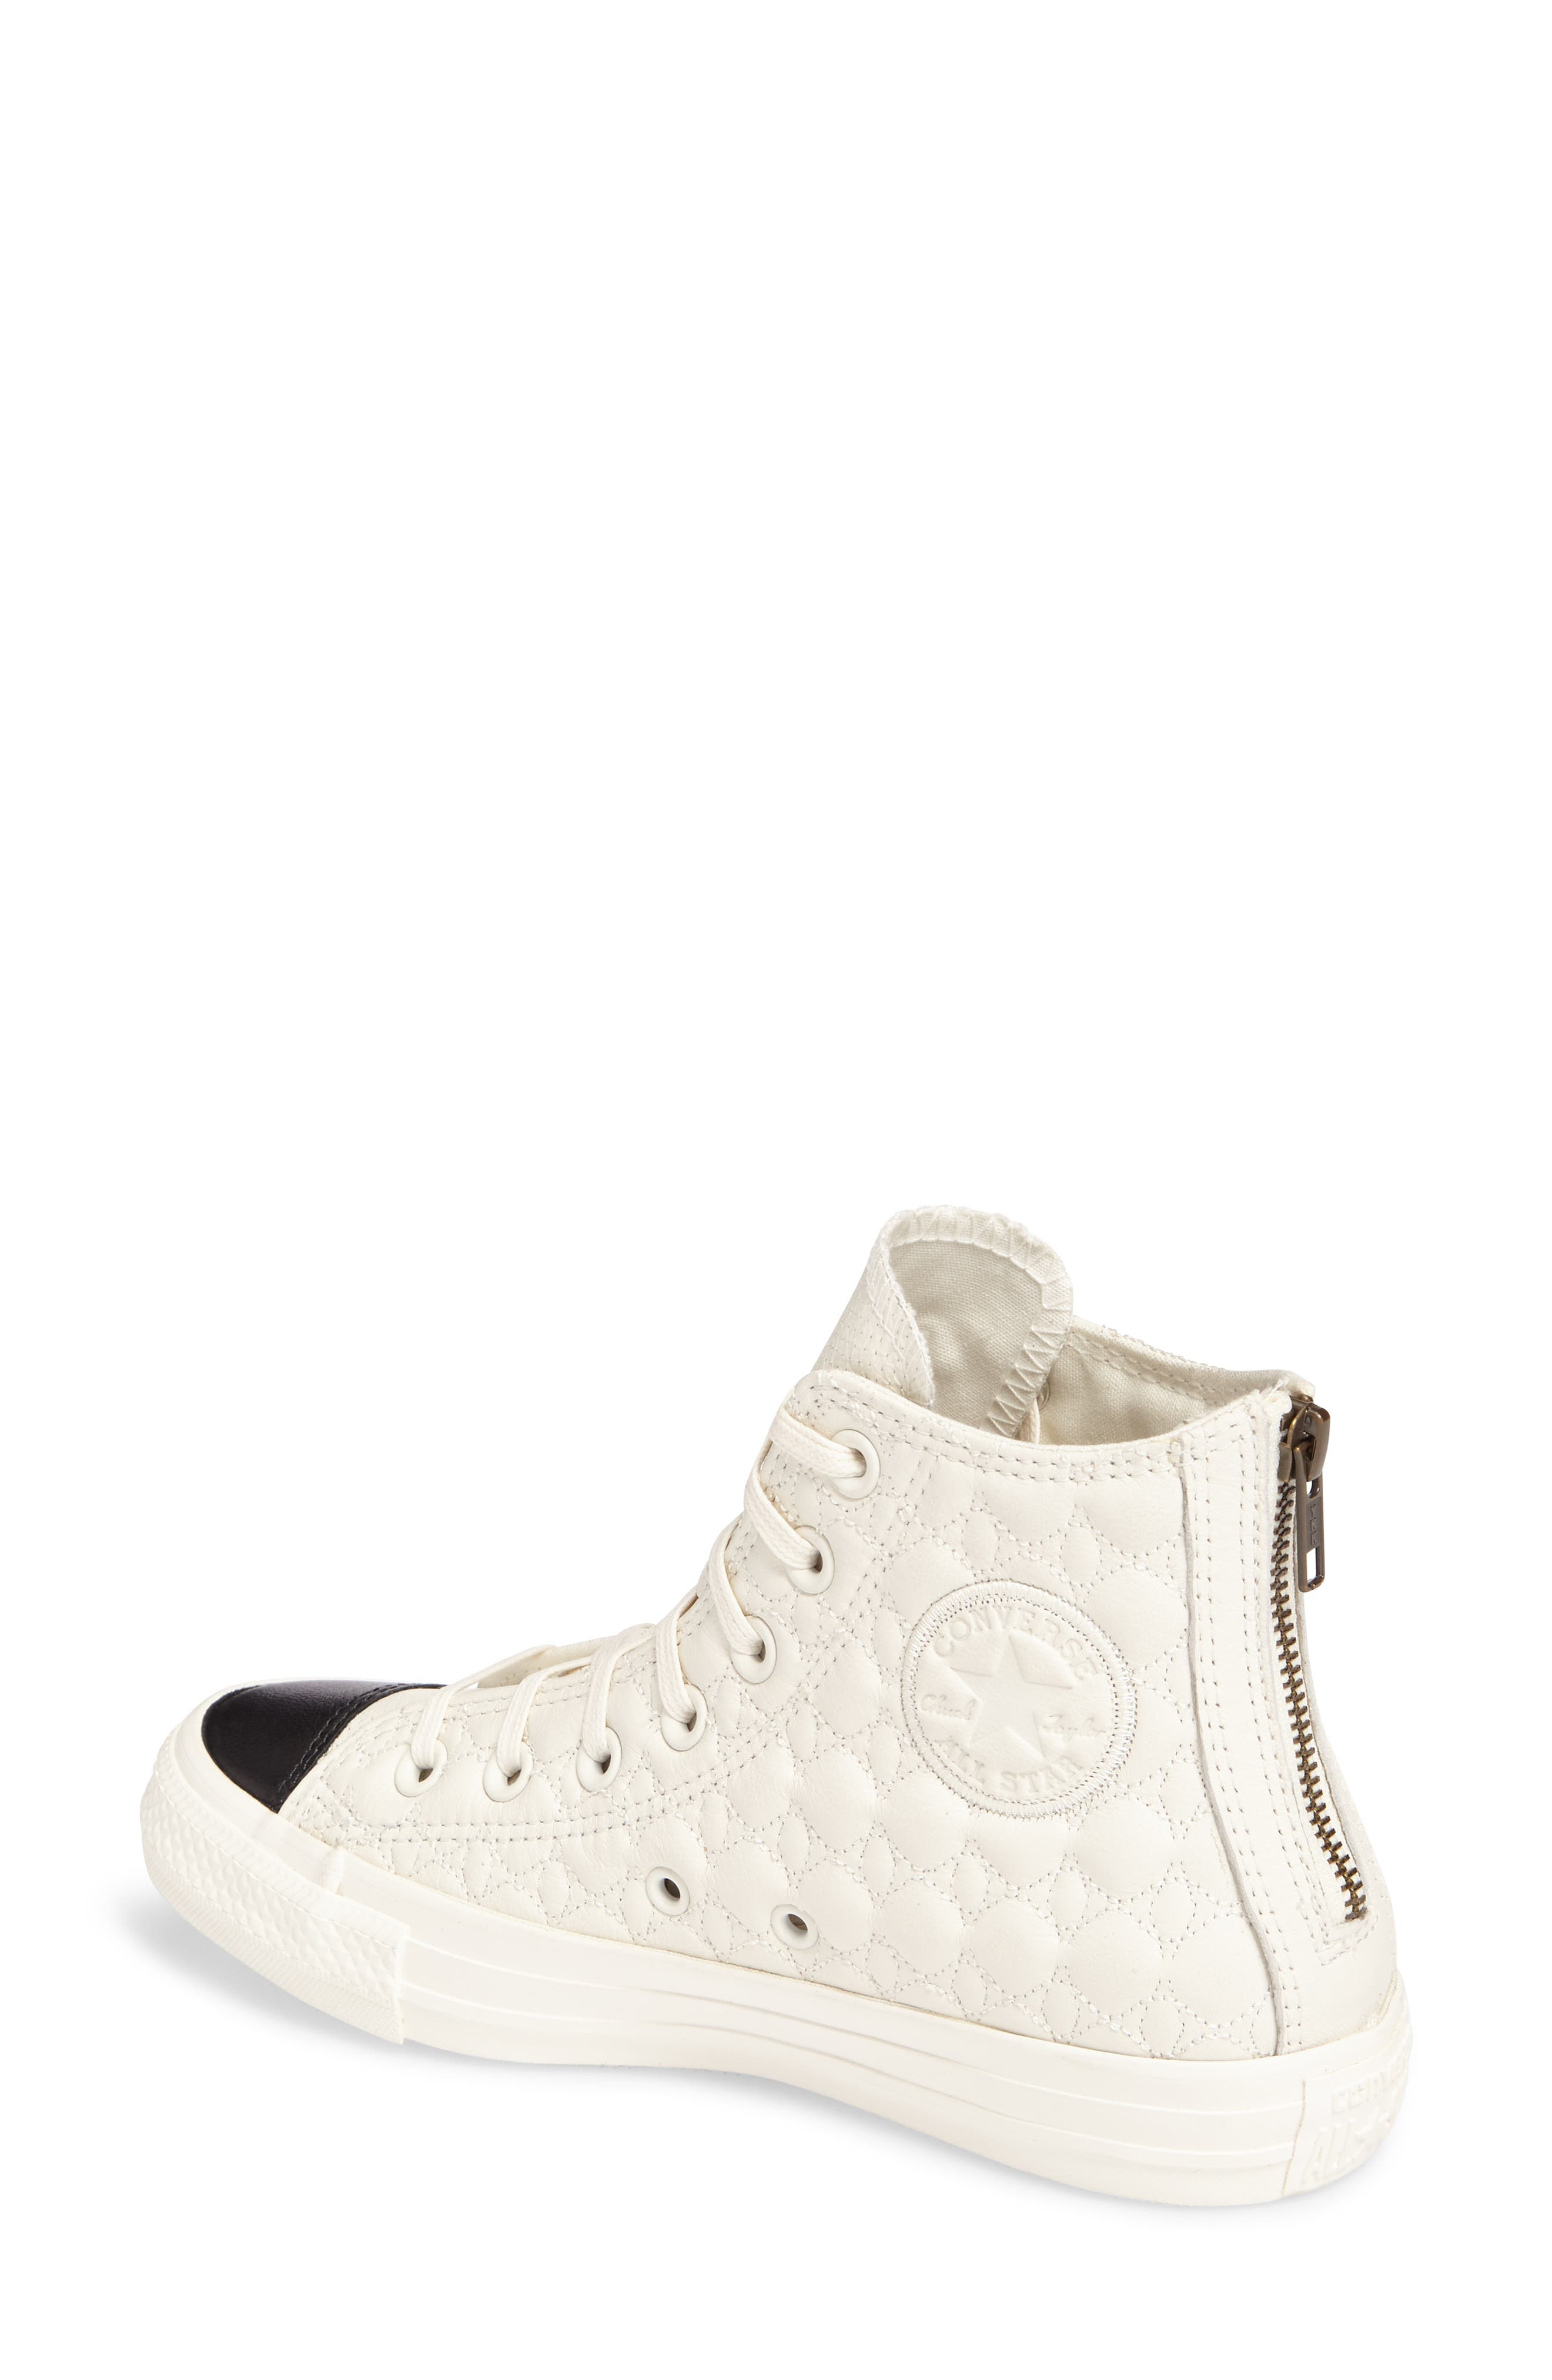 All Star<sup>®</sup> Quilted High Top Sneaker,                             Alternate thumbnail 2, color,                             Egret Leather